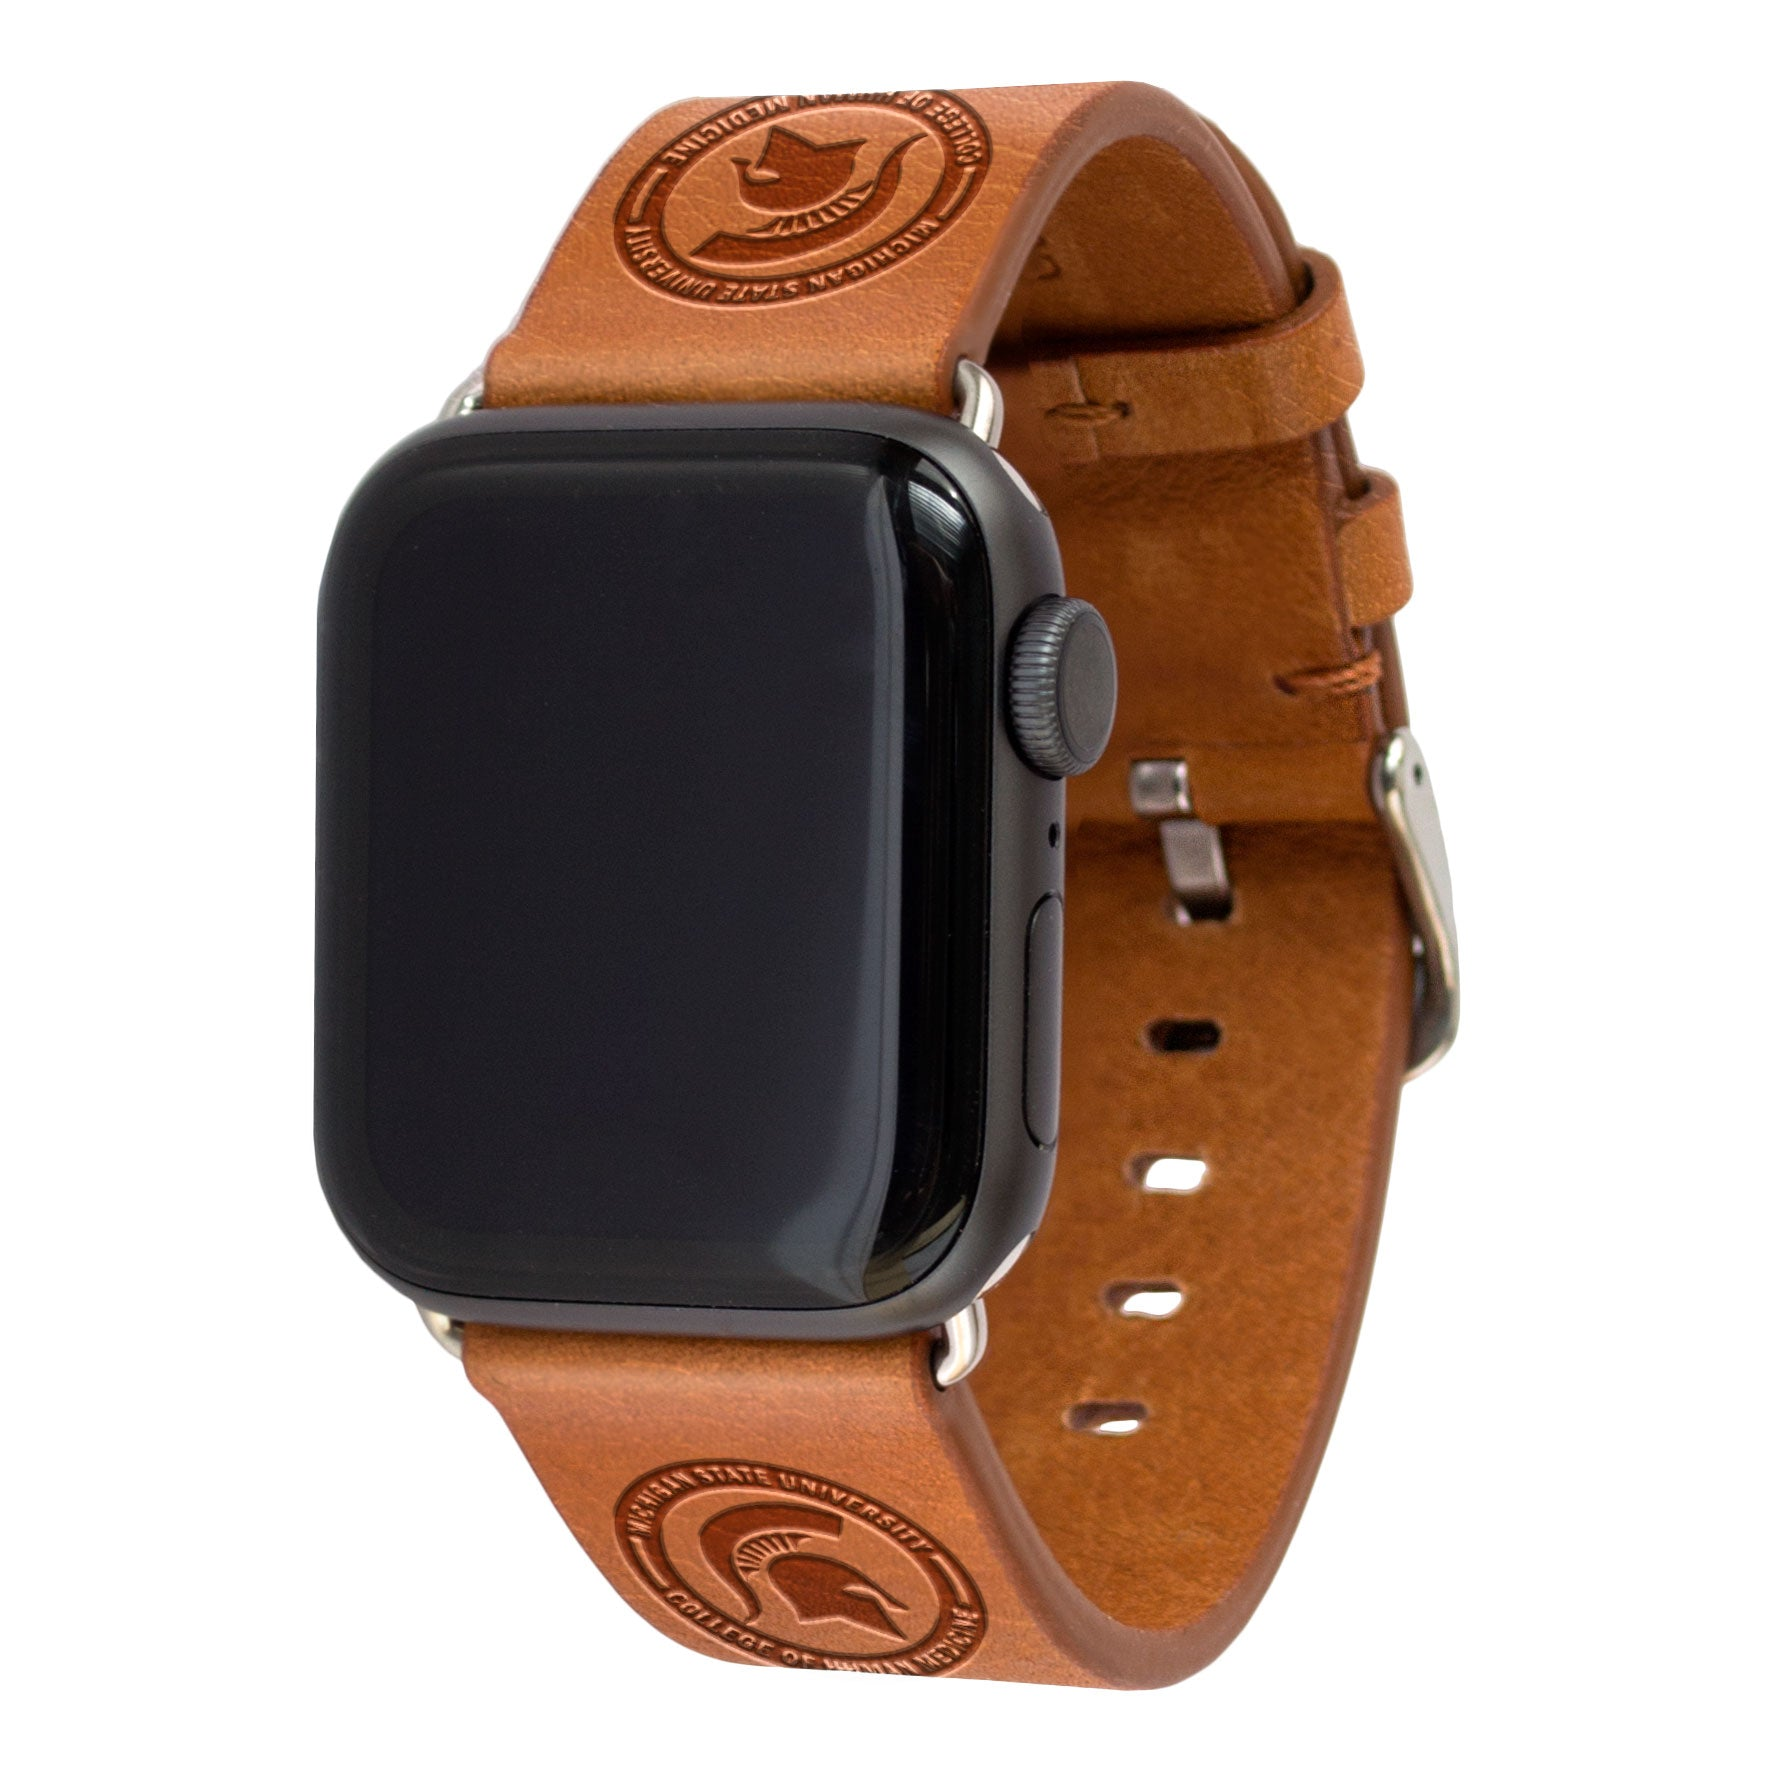 Michigan State University College of Human Medicine Leather Apple Watch Band